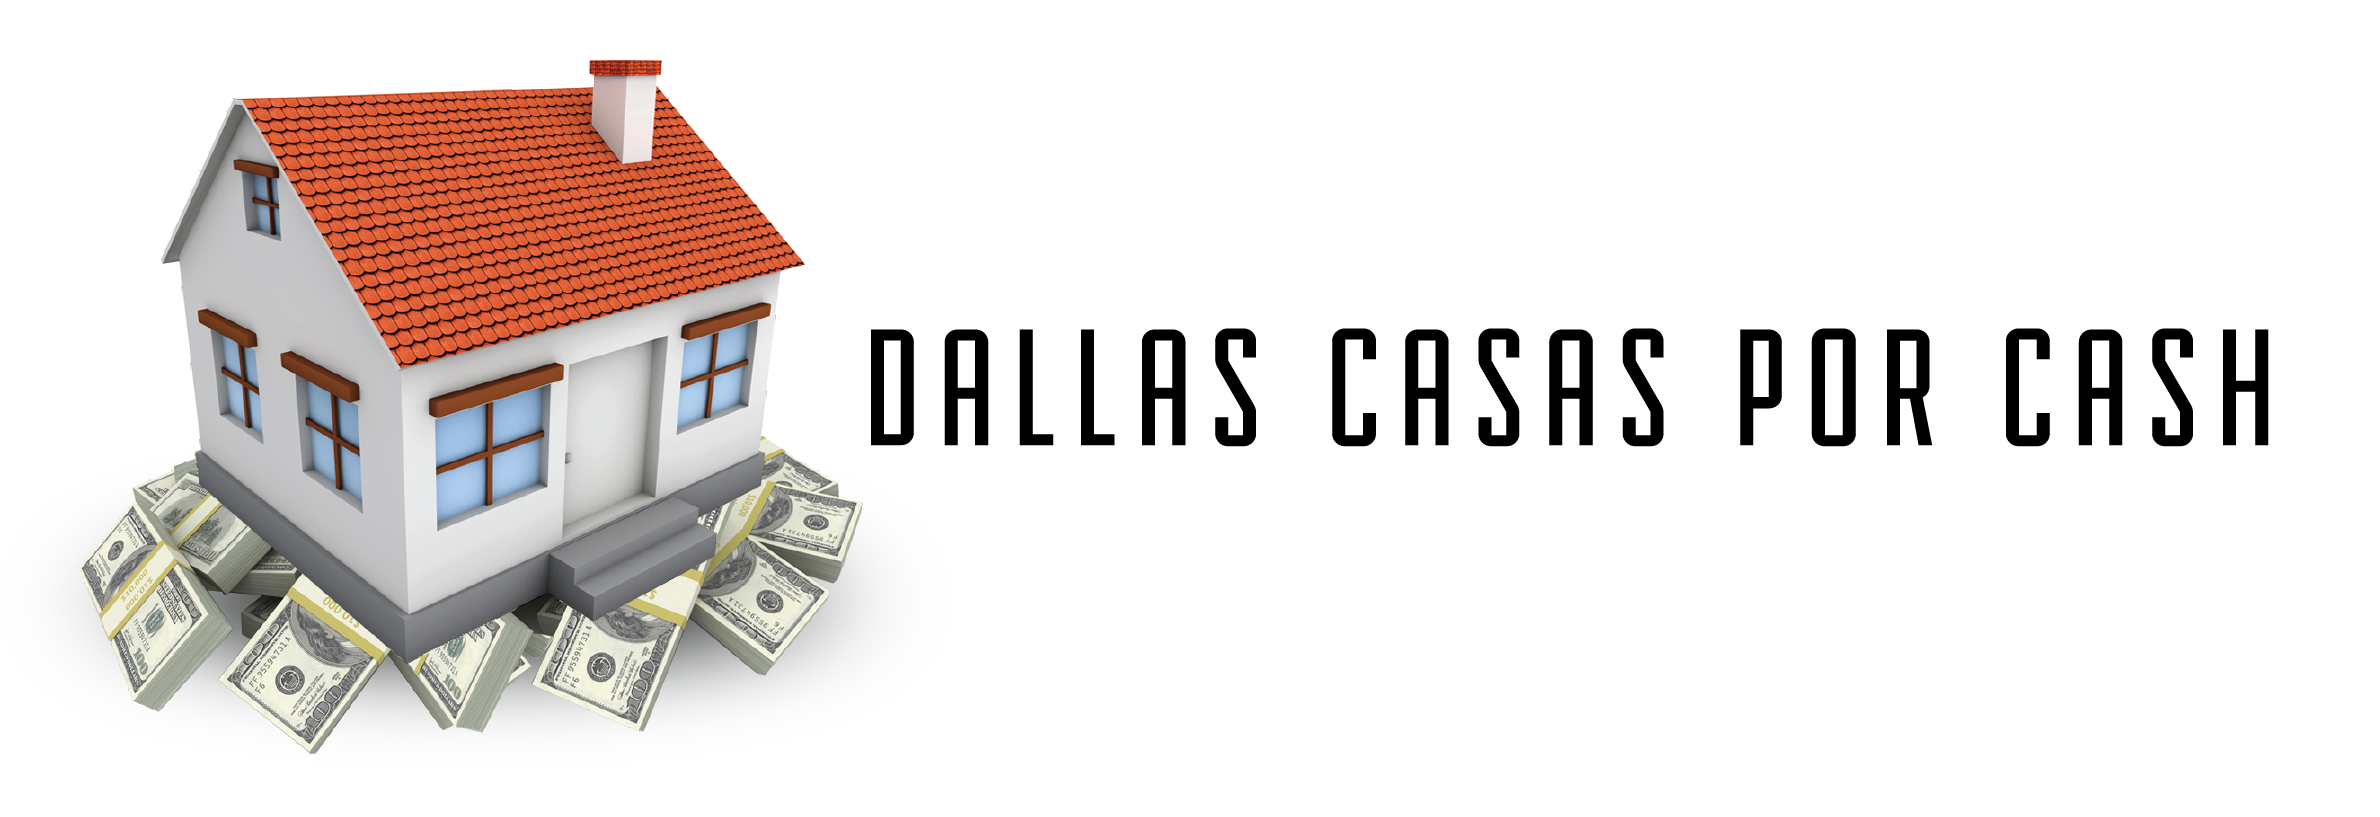 Dallas Casas por Cash